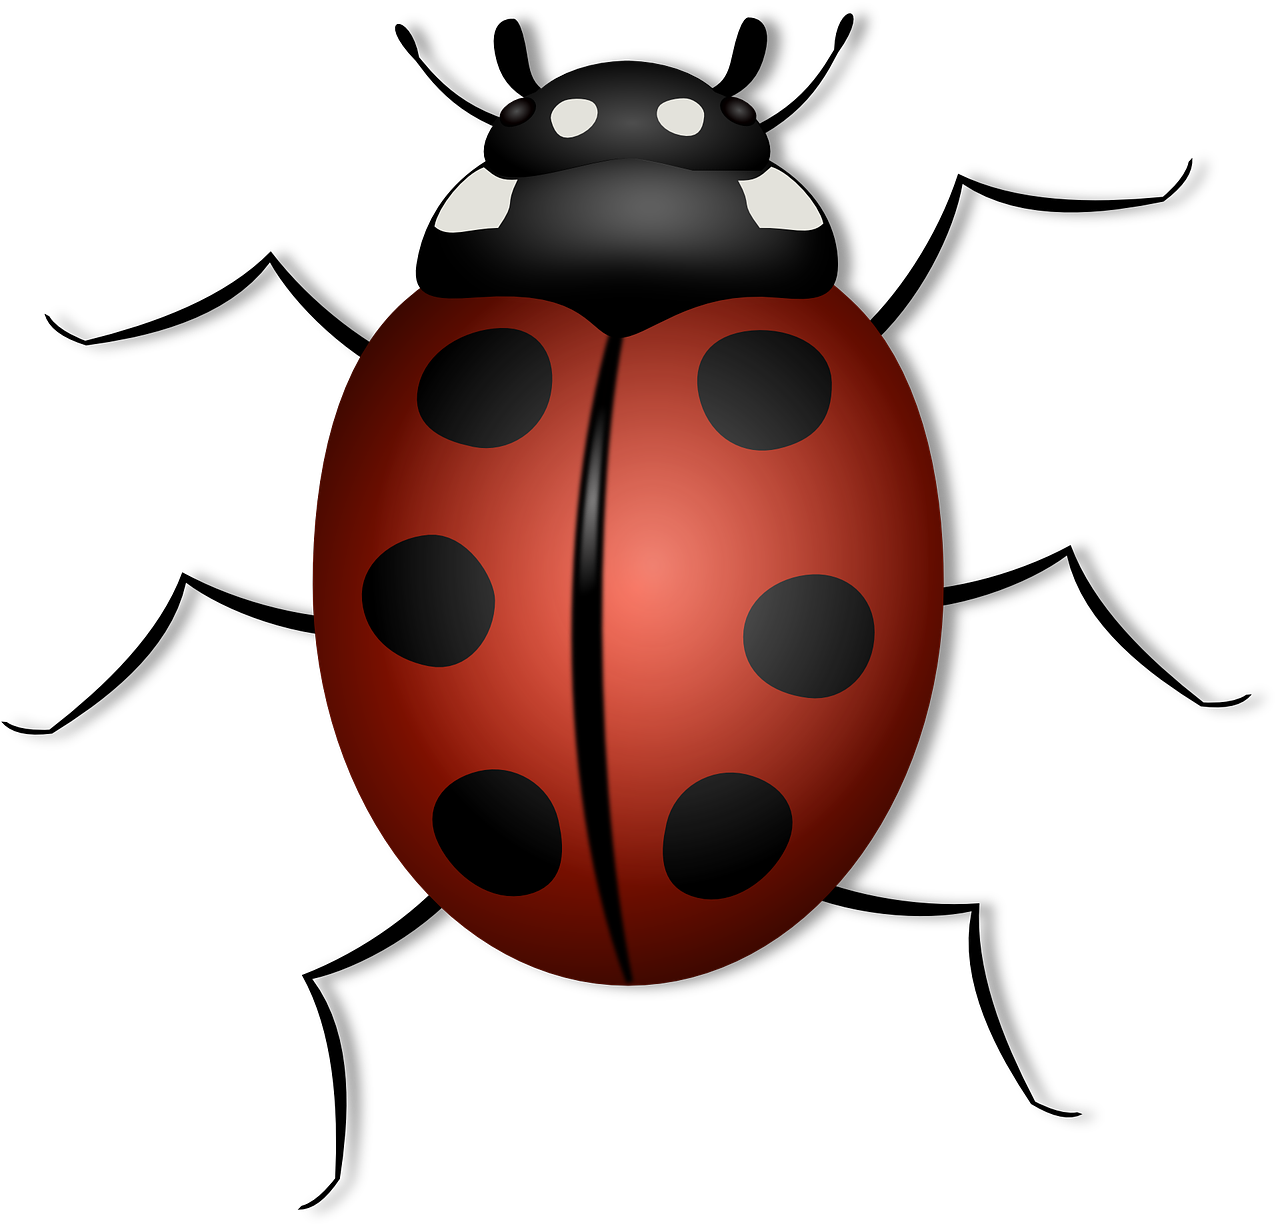 June bug clipart clipart images gallery for free download.